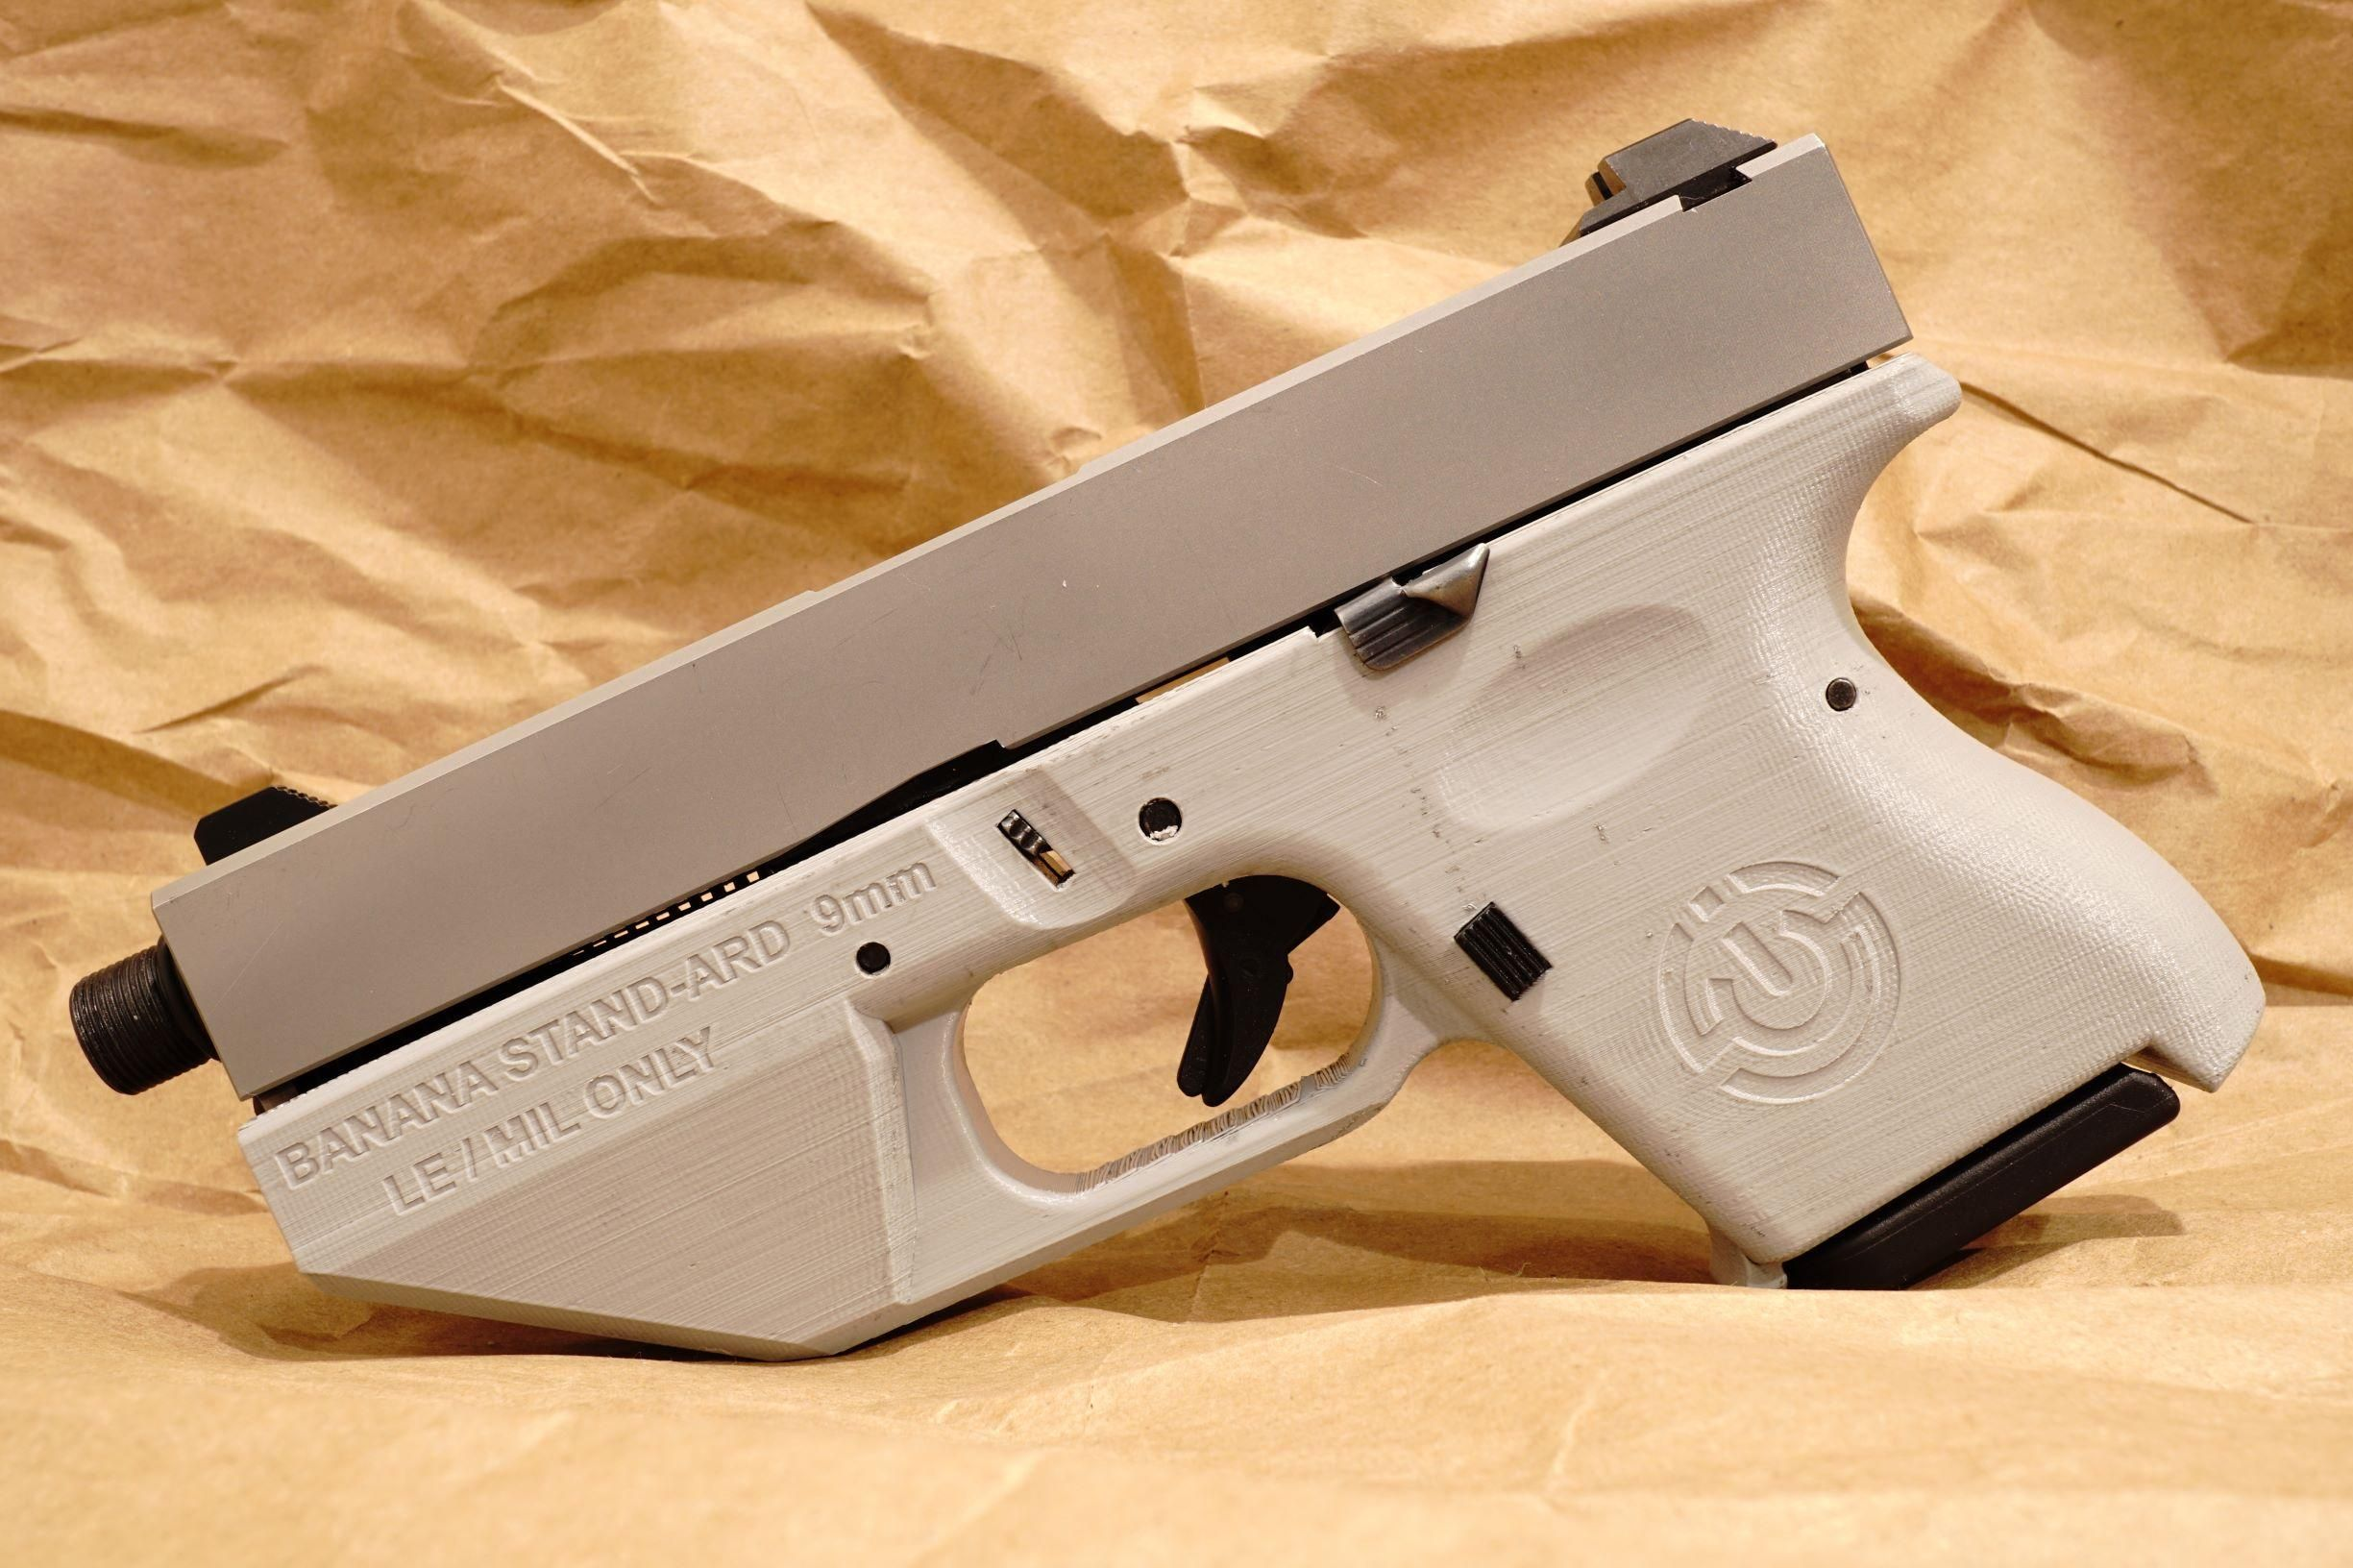 The Banana STAND-ARD World's First 3D Printed Glock Pistol